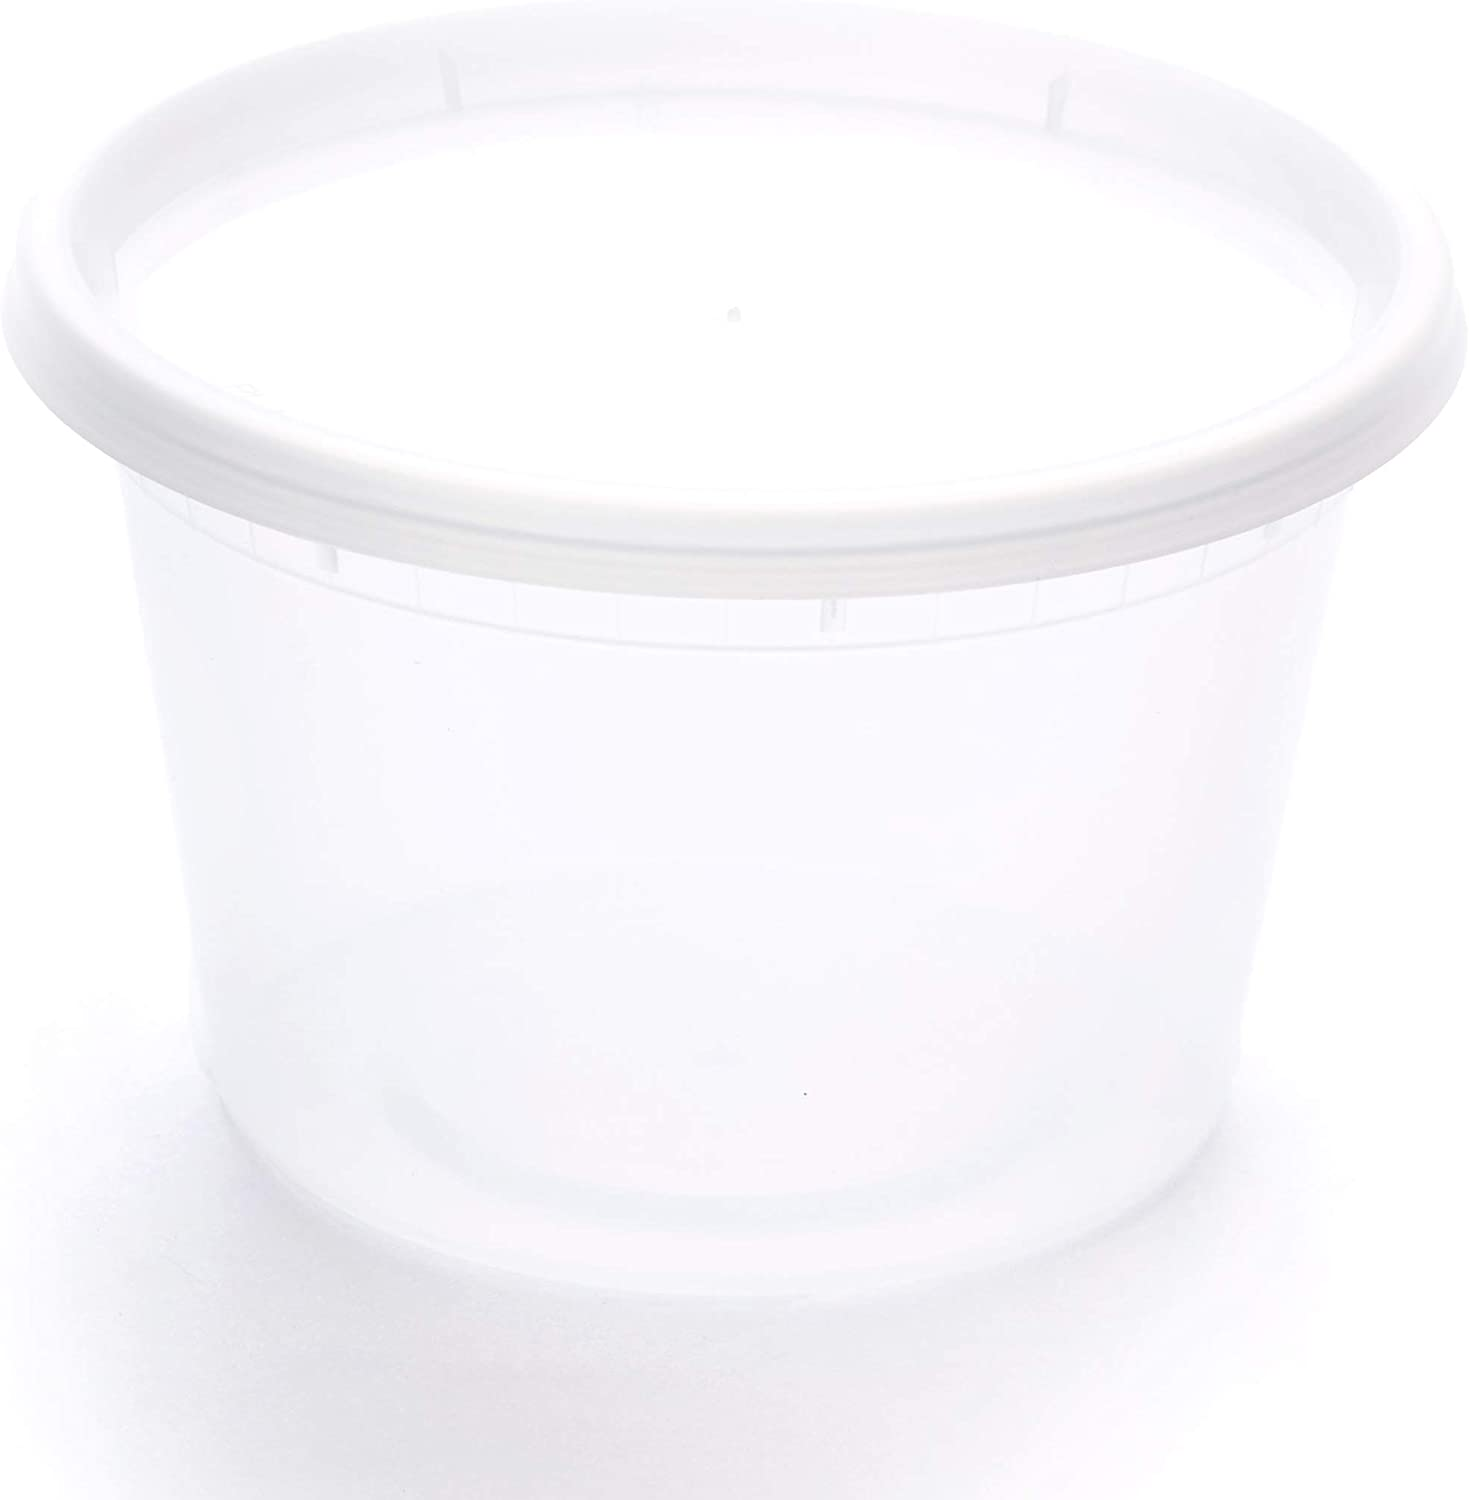 Scotty's 24 Pack of 16 oz Deli Plastic Food Storage Containers with Lids - 24 containers and 24 lids - Microwaveable - Restaurant Quality